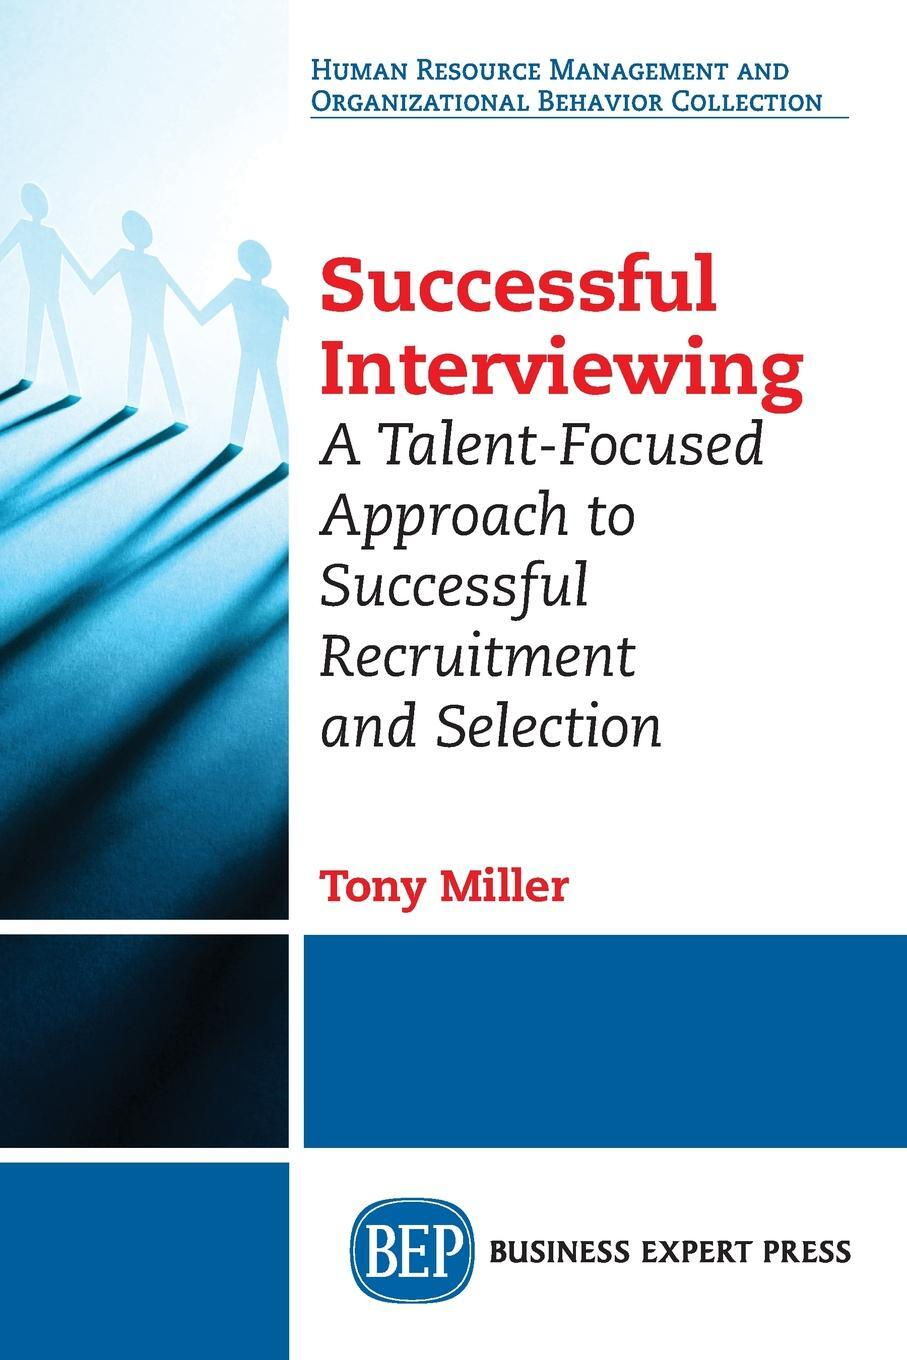 Successful Interviewing. A Talent-Focused Approach to Successful Recruitment and Selection